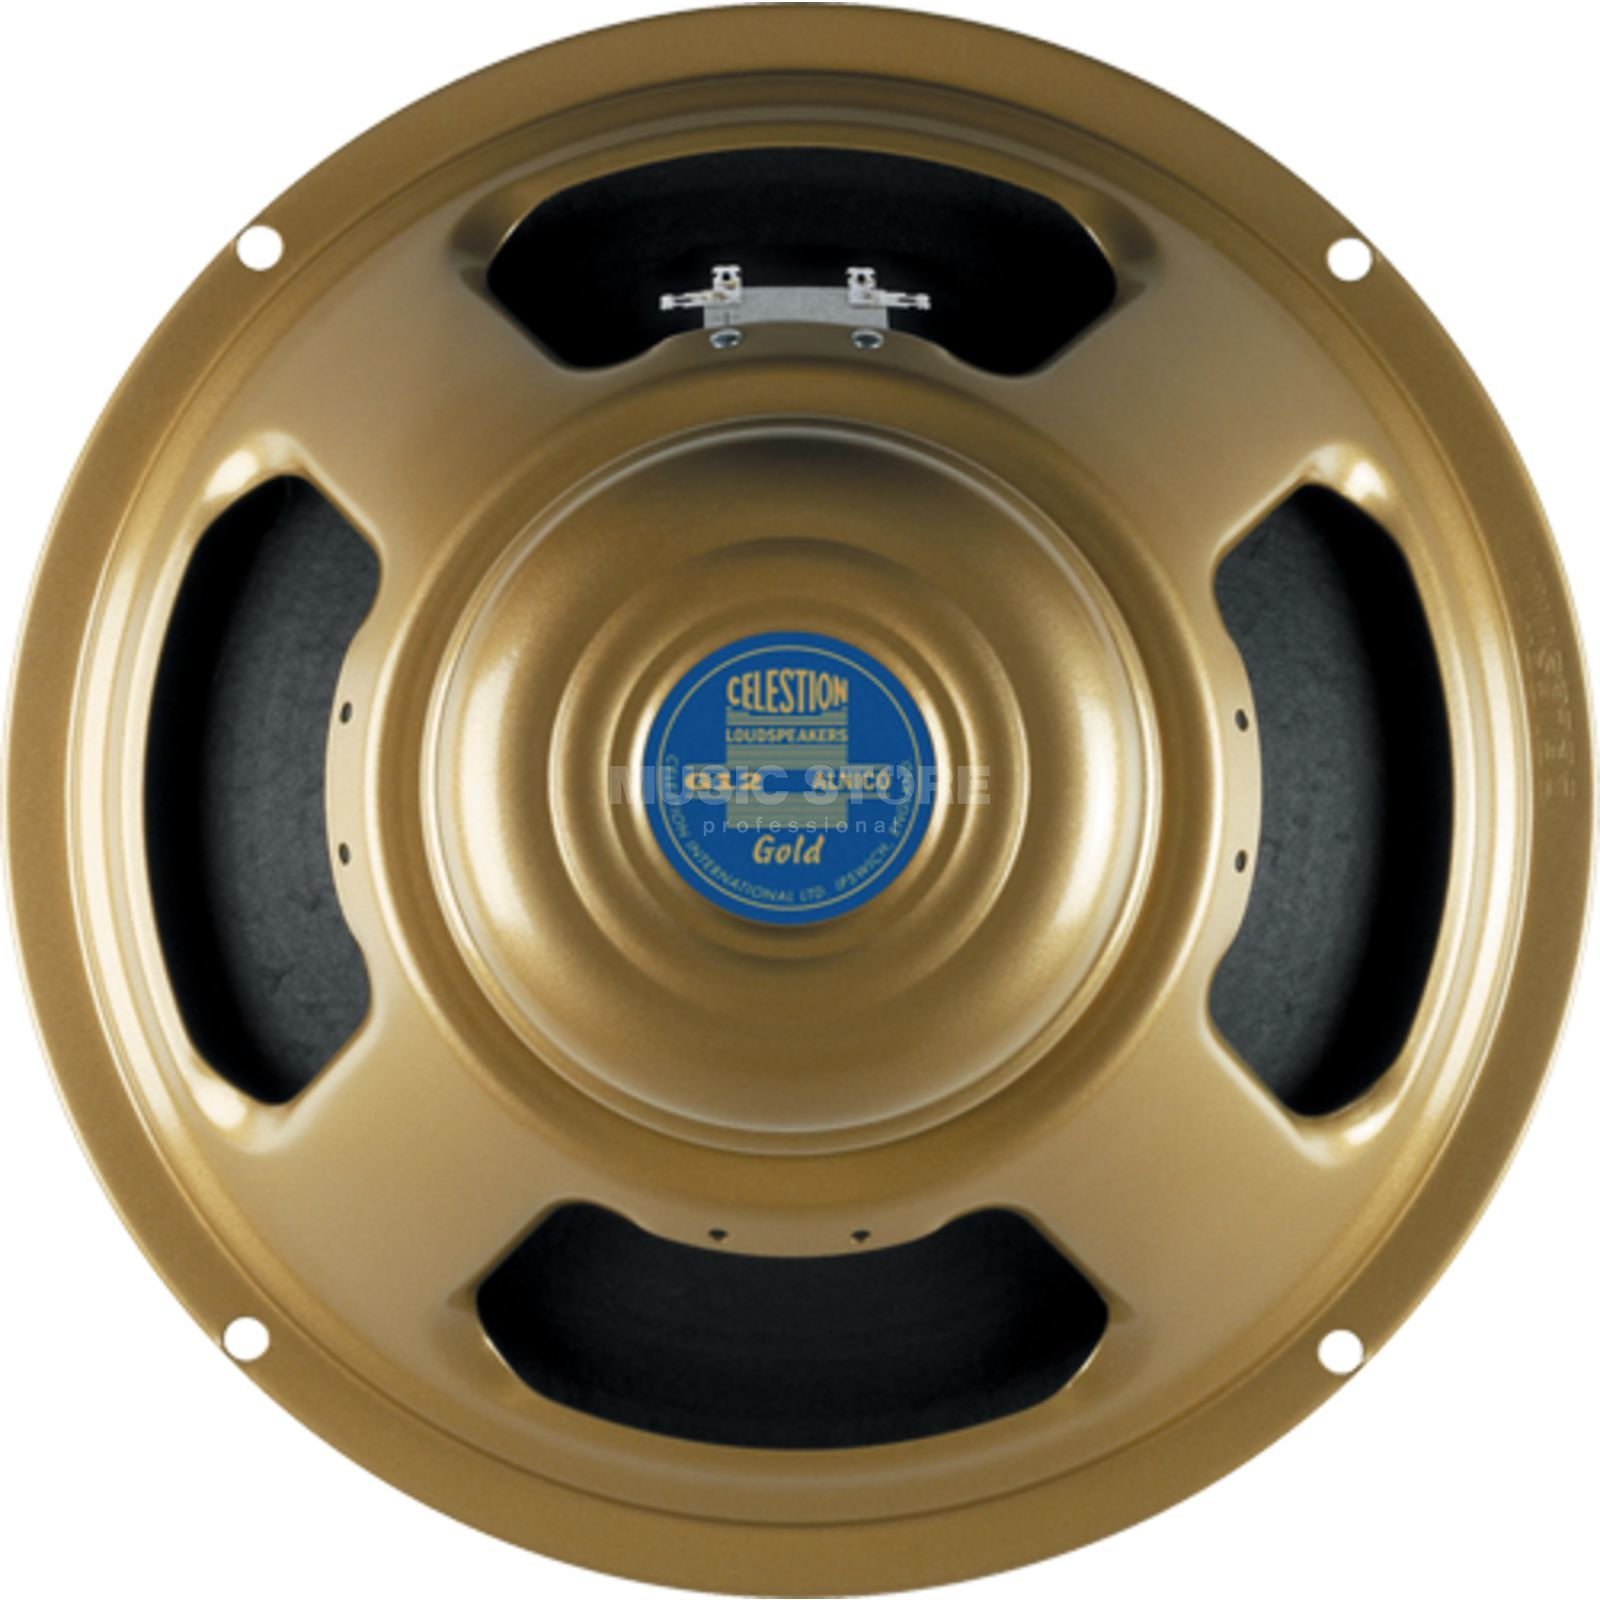 "Celestion Celestion Gold 12"" Speaker 15 Ohm Produktbild"